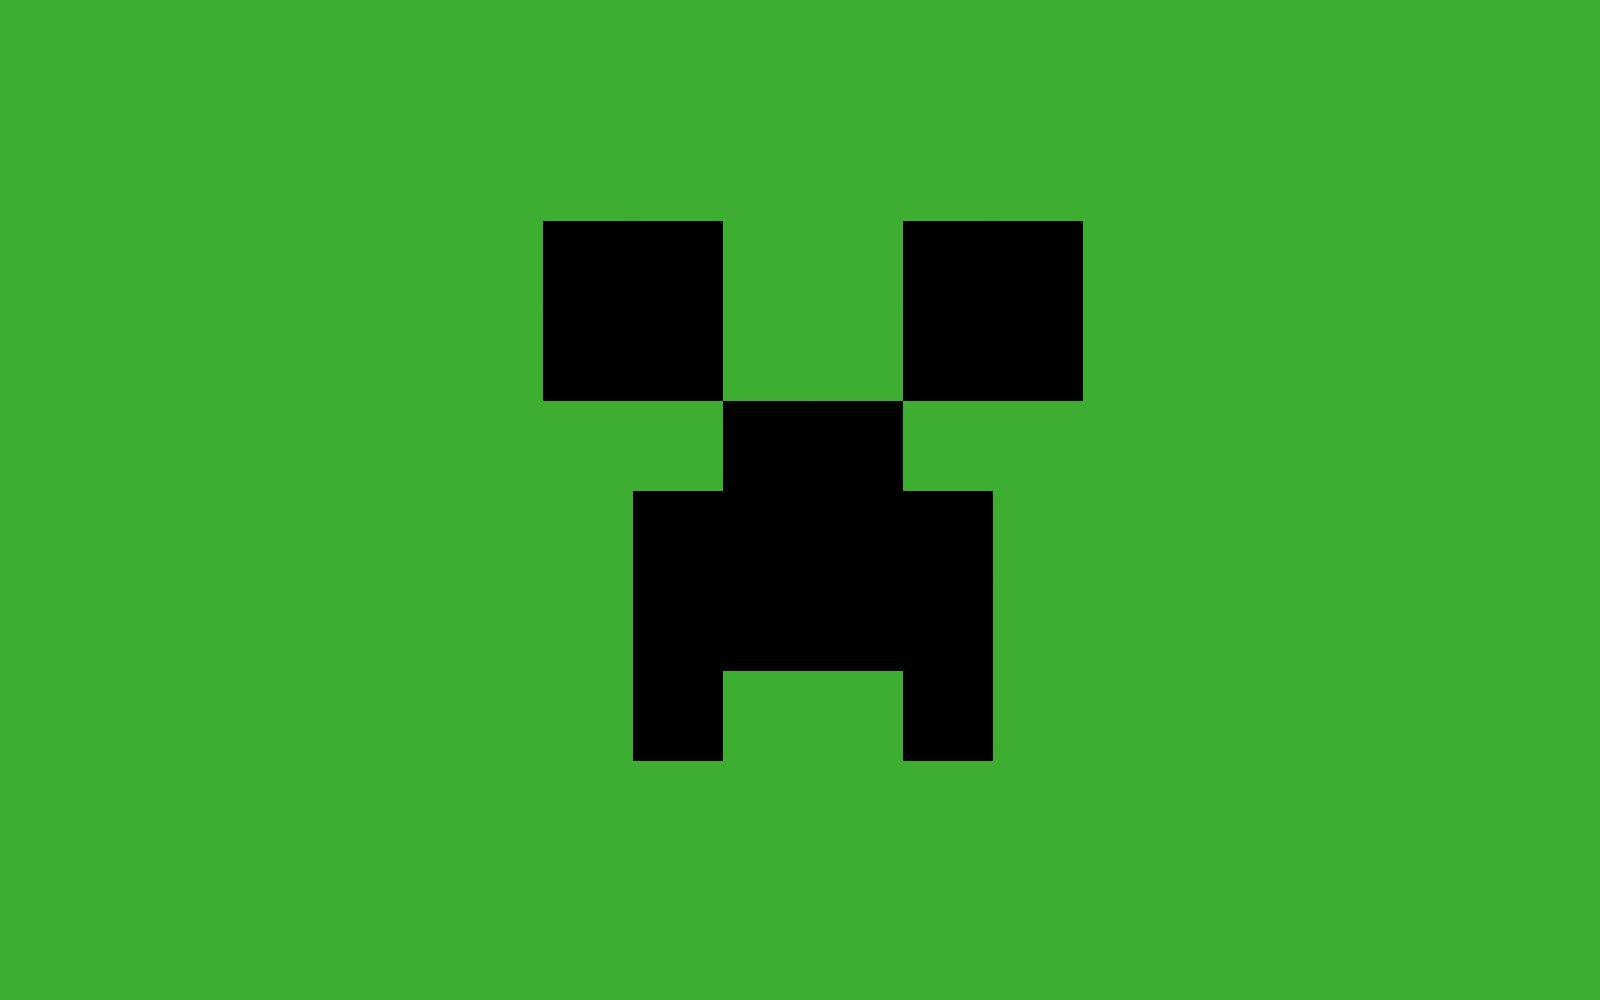 Minecraft Wallpapers For Laptop Background Creeper Wallpaper Minecraft Cow Wallpaper Minecraft Pig Wallpap Creeper Minecraft Minecraft Wallpaper Creepers